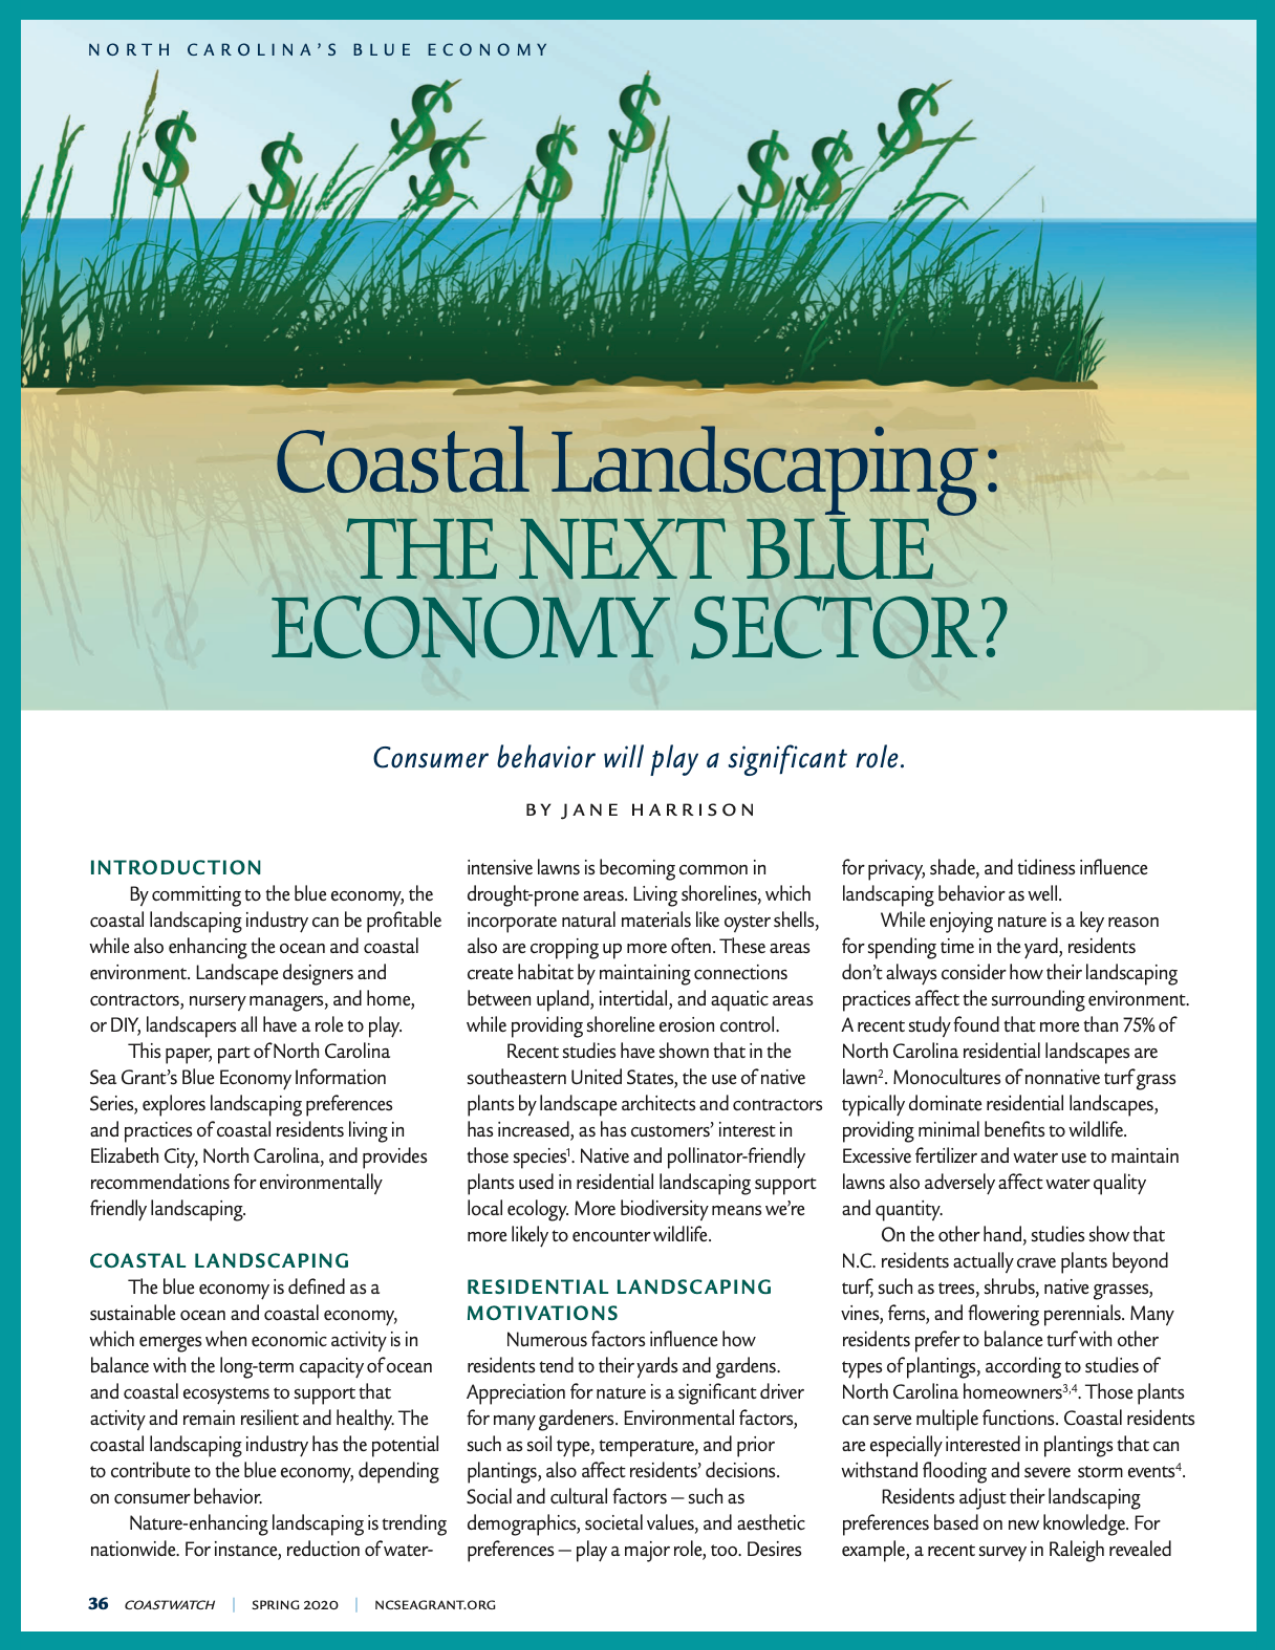 First page of Blue Economy information series, issue 5